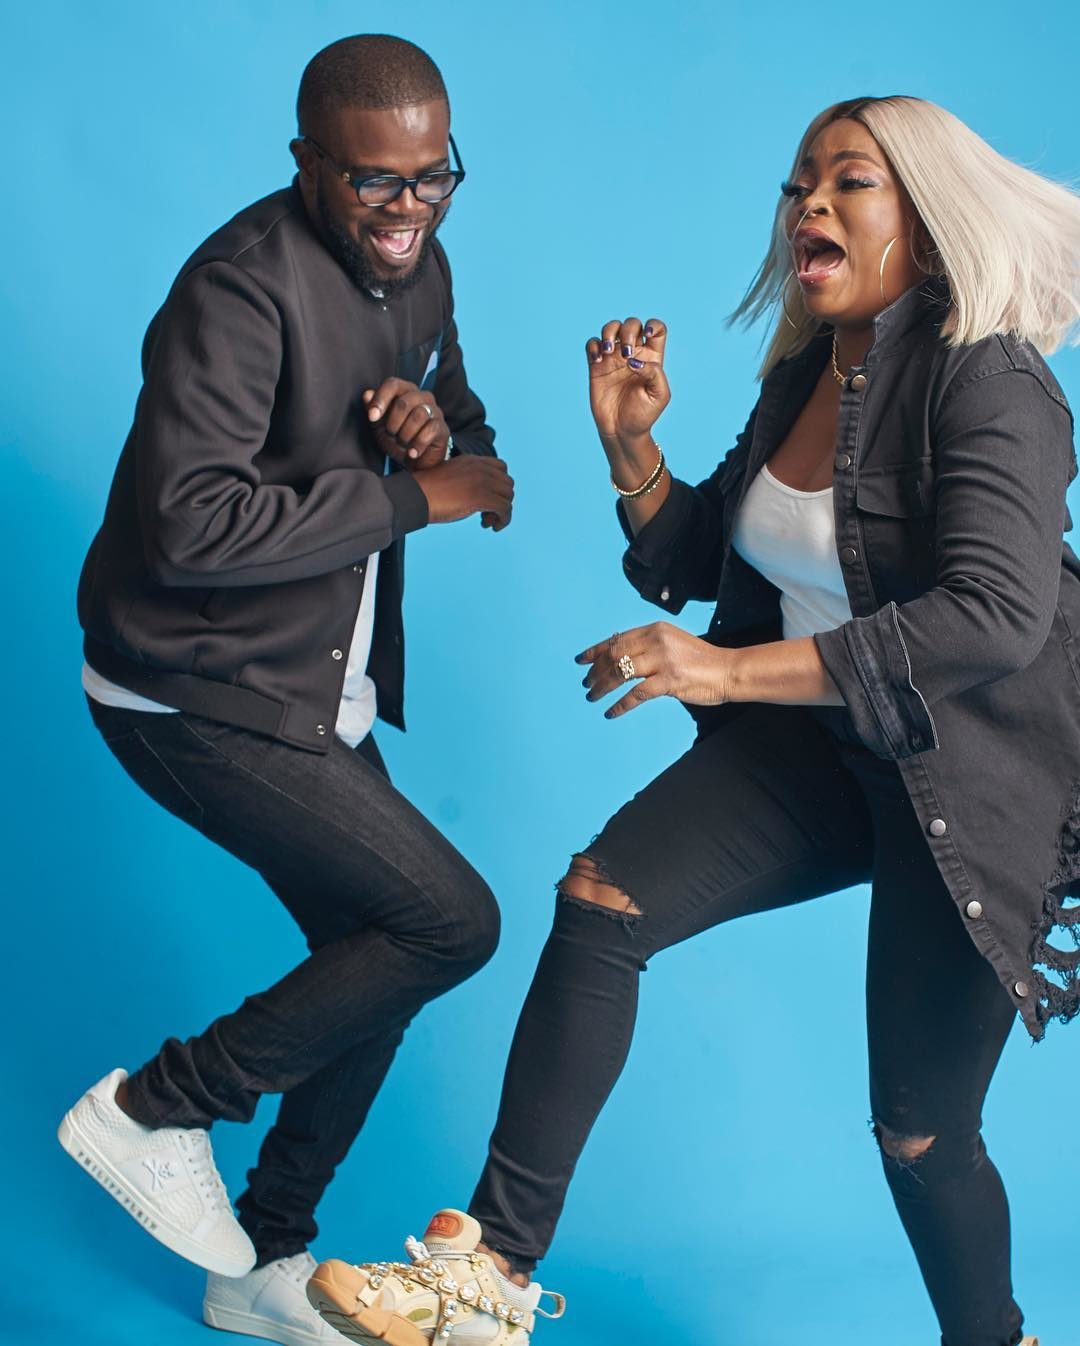 These Pictures of Funke Akindele-Bello & Jjc Skillz are Such a Delight